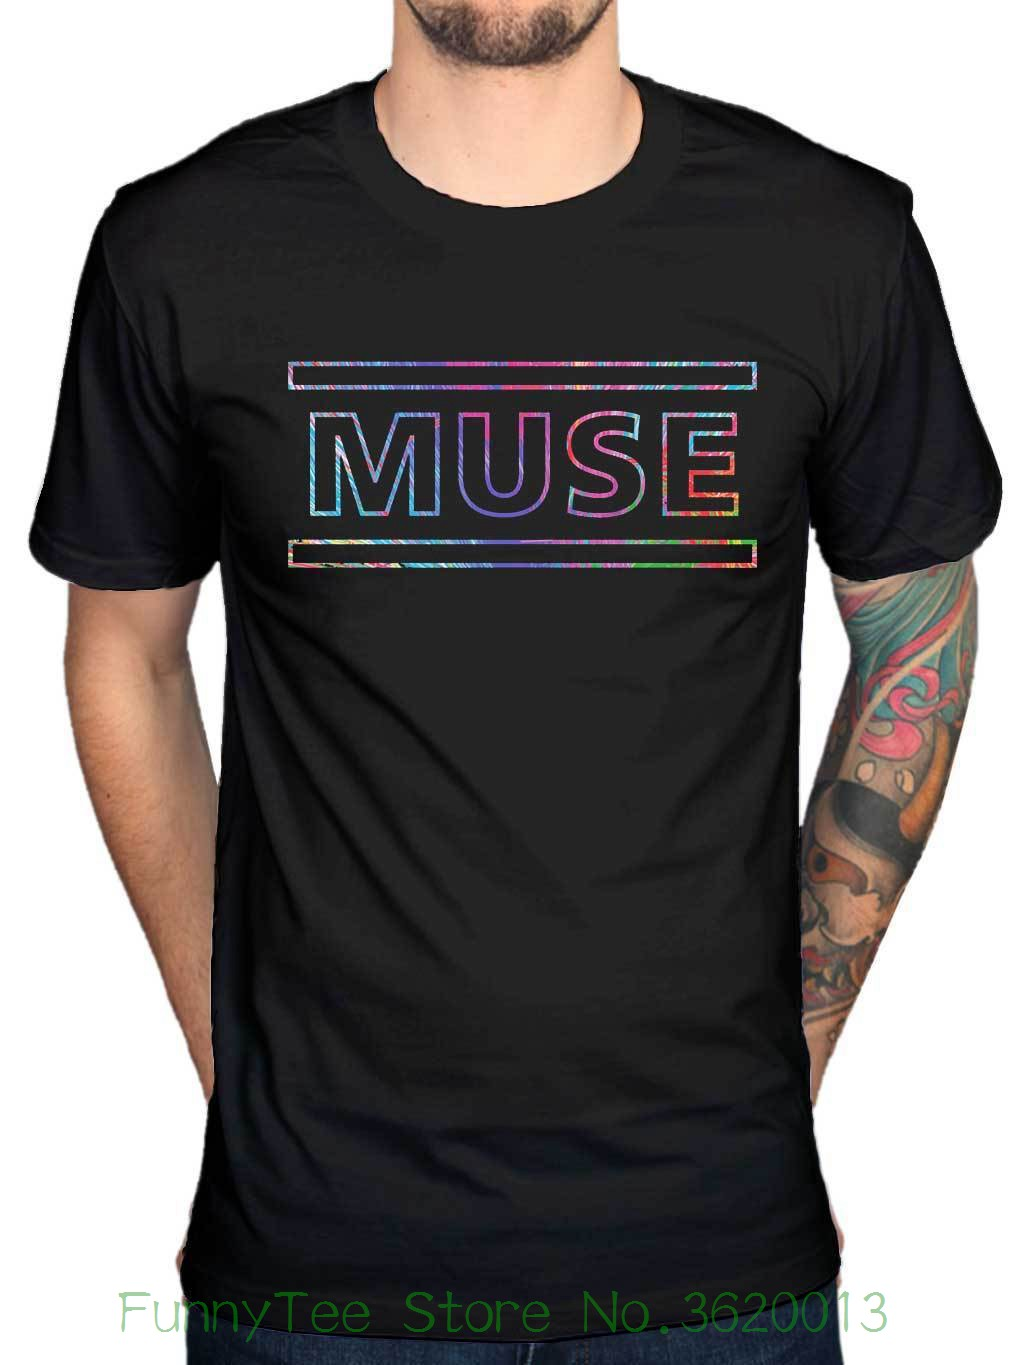 Official Muse The 2nd Law Logo T-shirt Song Titles Spectrum Metal Hard Rock Band image